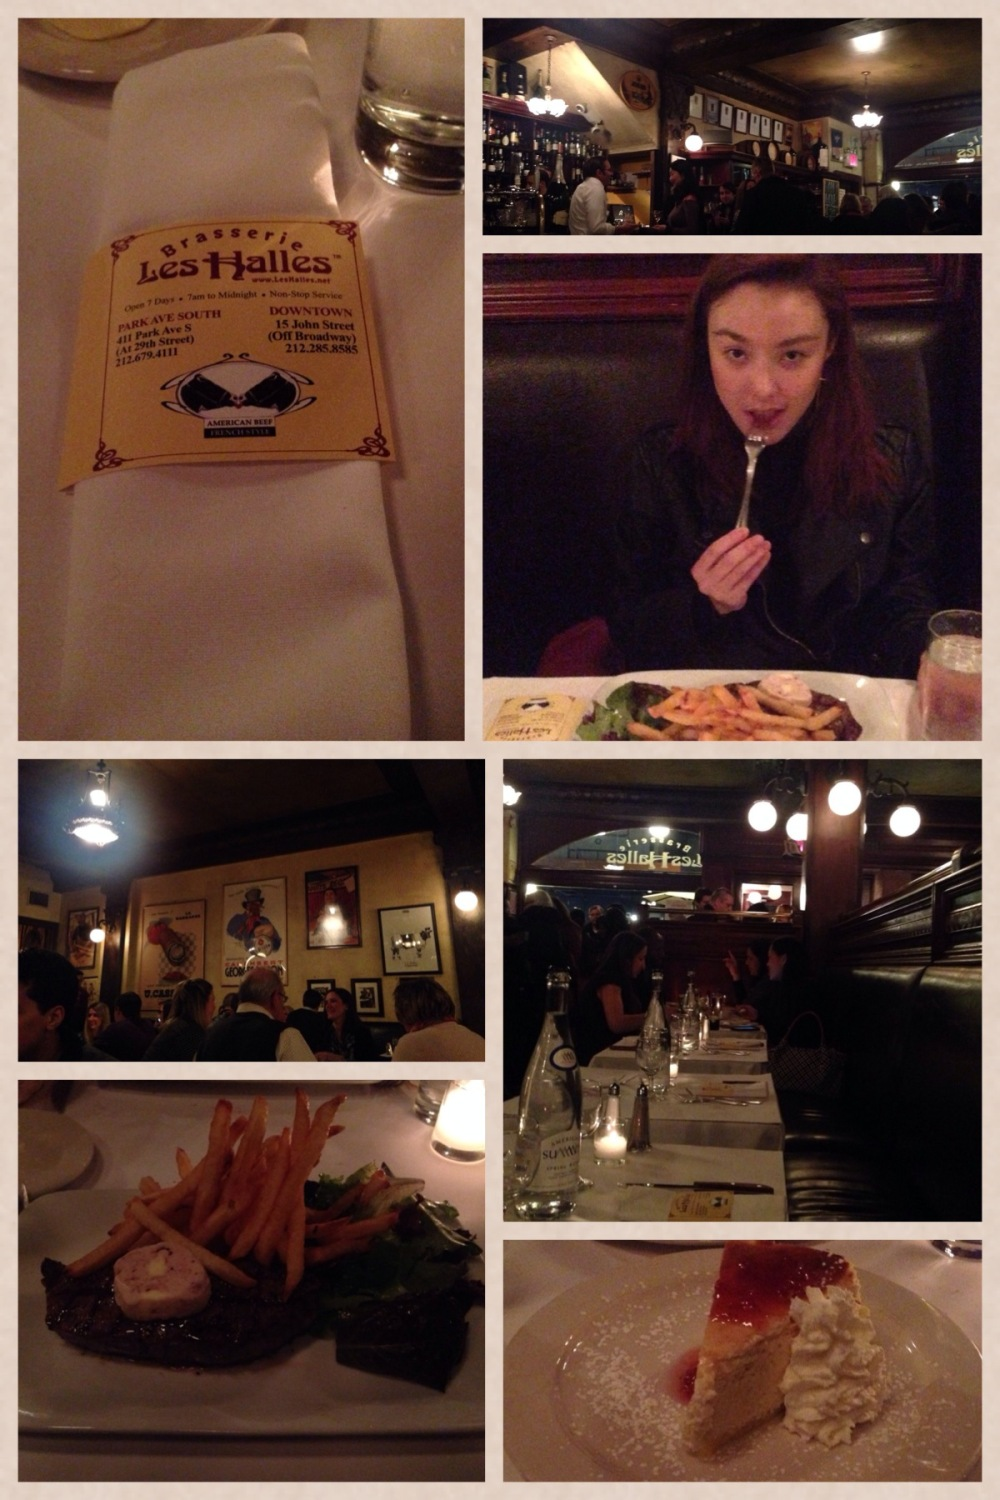 Dinner in New York